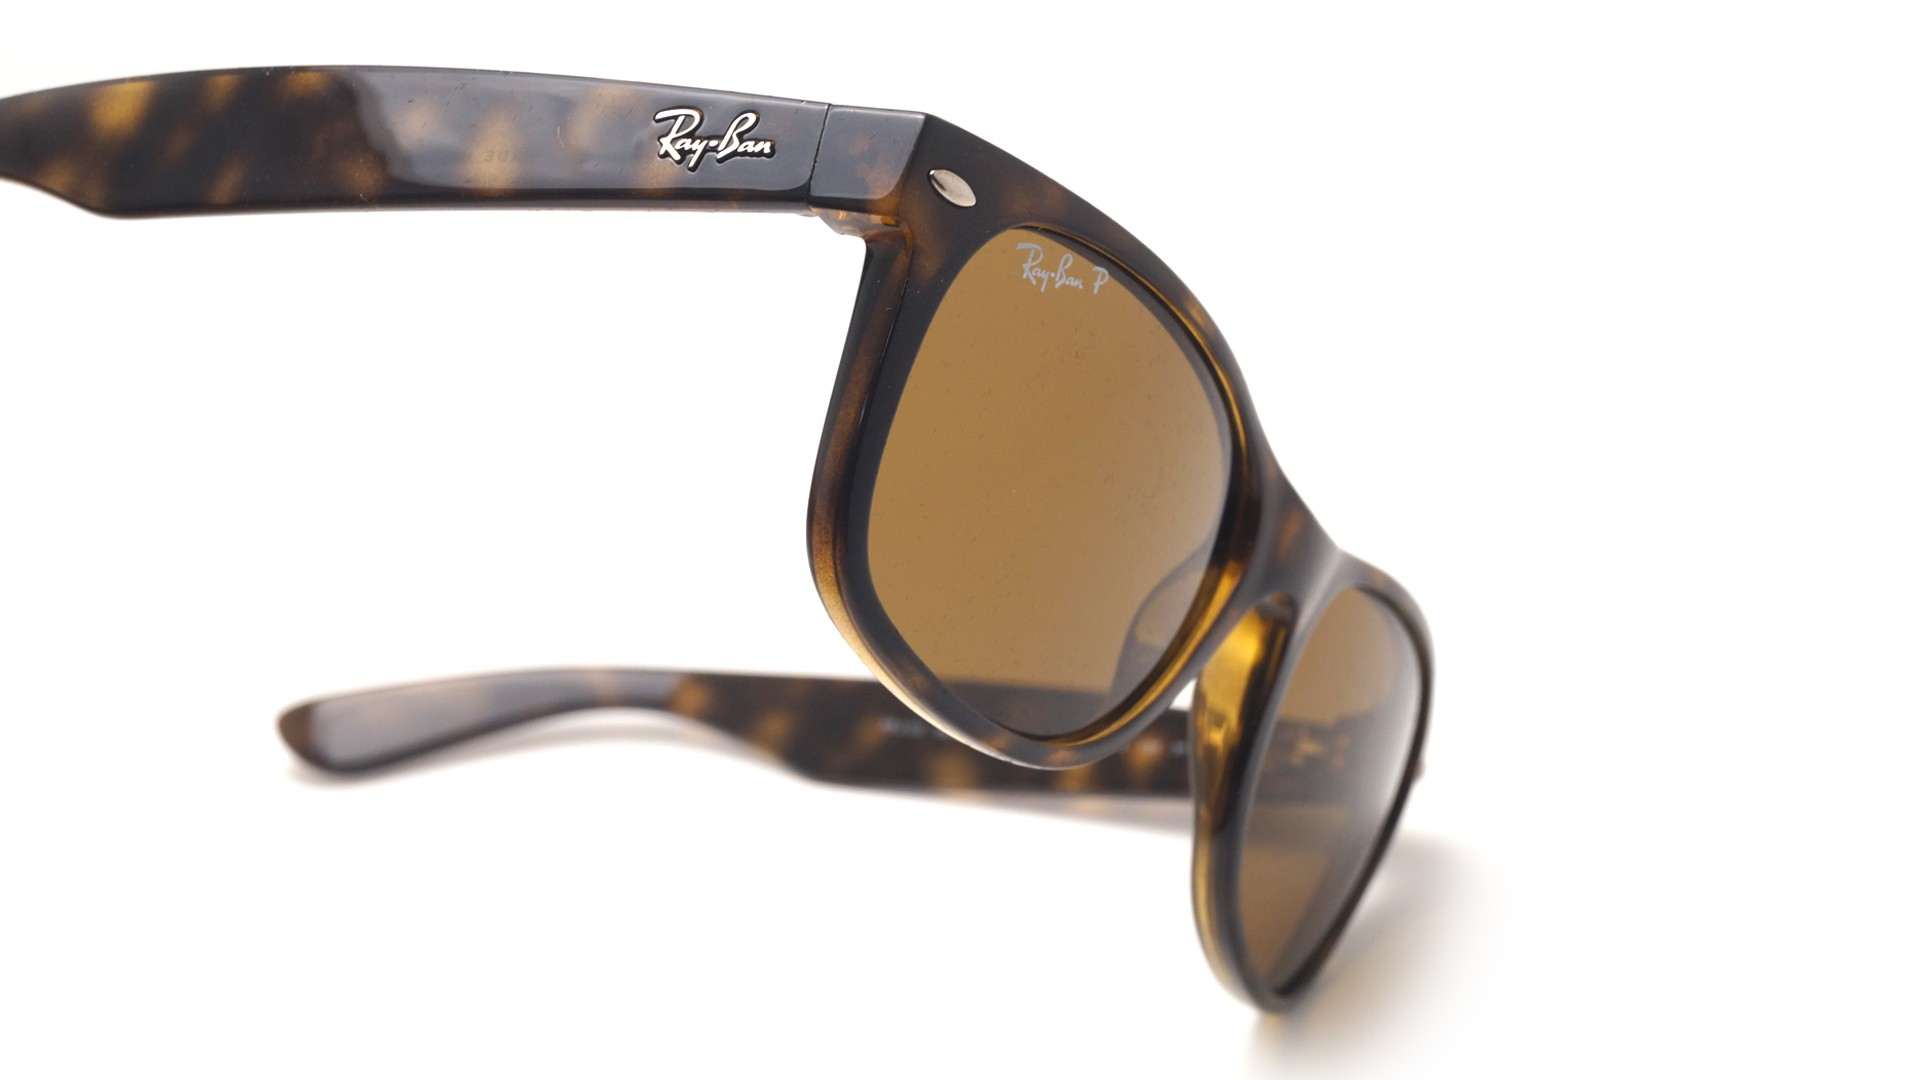 31a9890bbbf ... order sunglasses ray ban new wayfarer tortoise rb2132 902 57 55 18  large polarized 3b157 86826